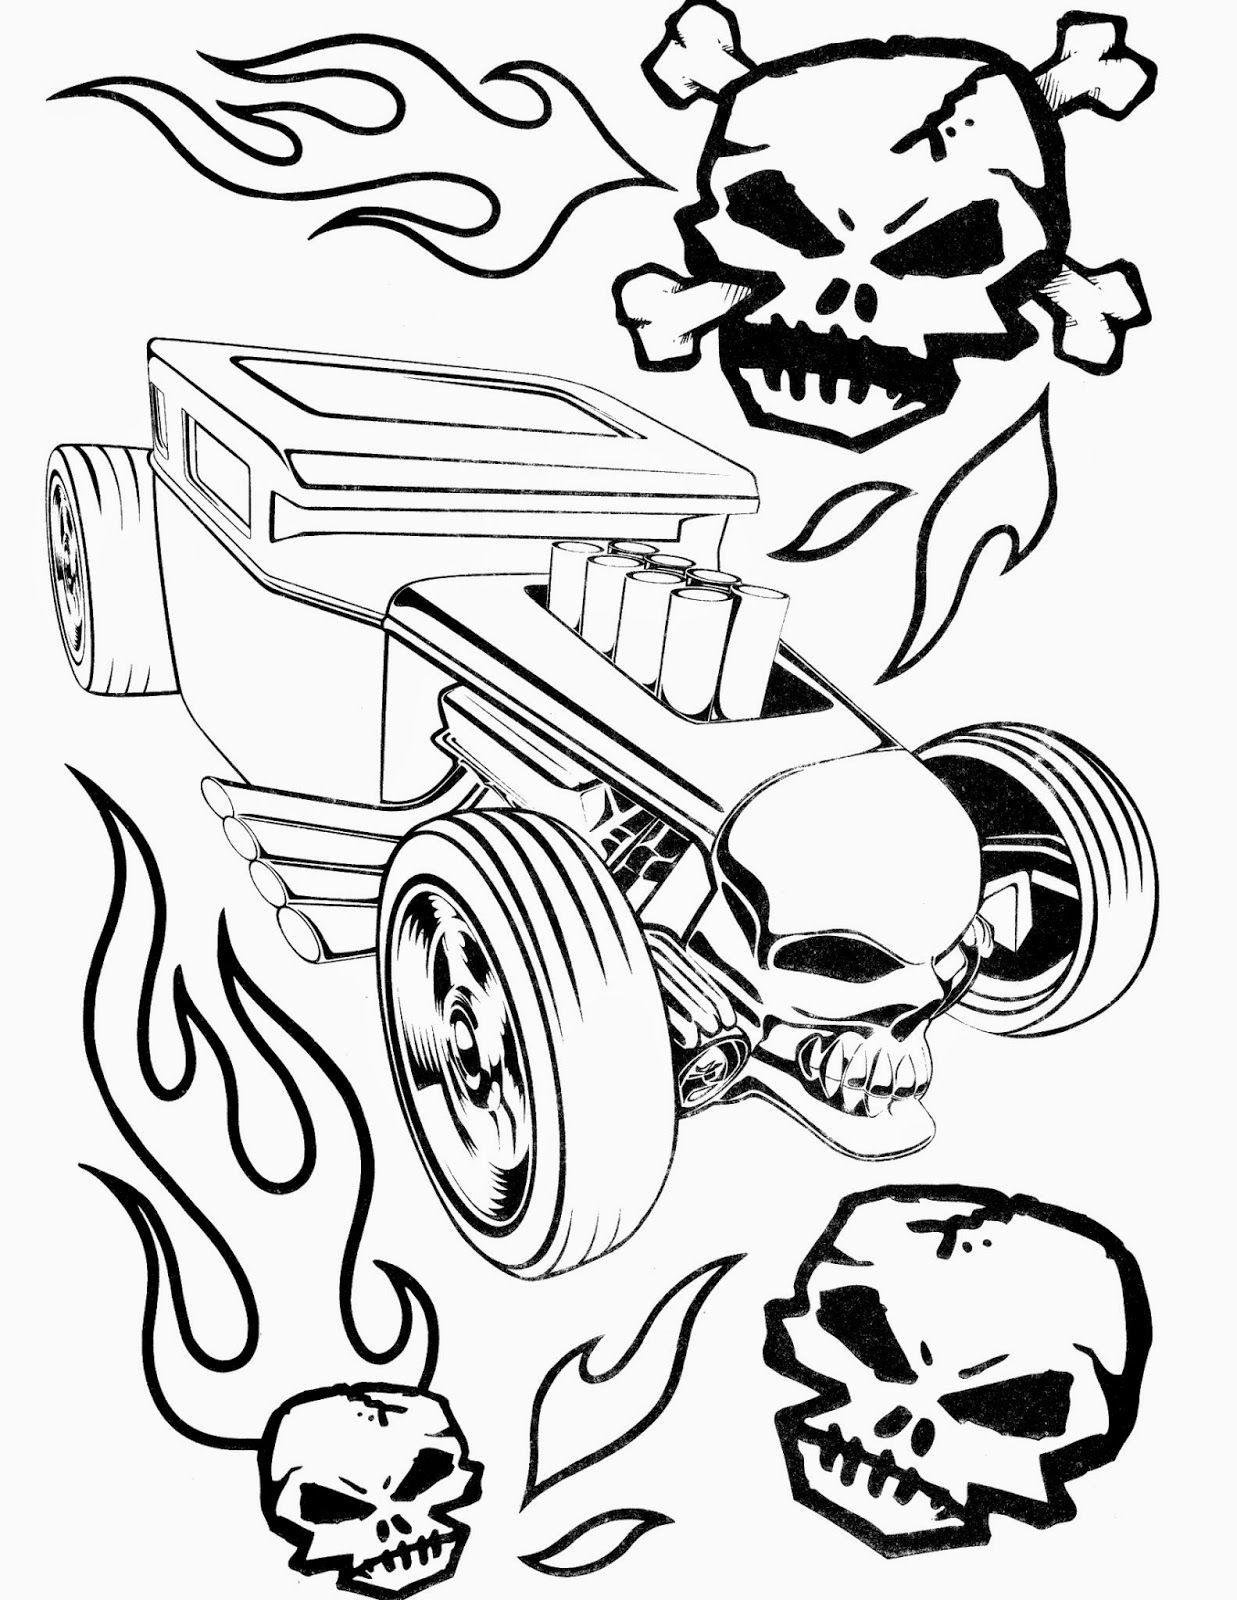 hotwheels colouring pages hot wheels coloring pages getcoloringpagescom hotwheels pages colouring